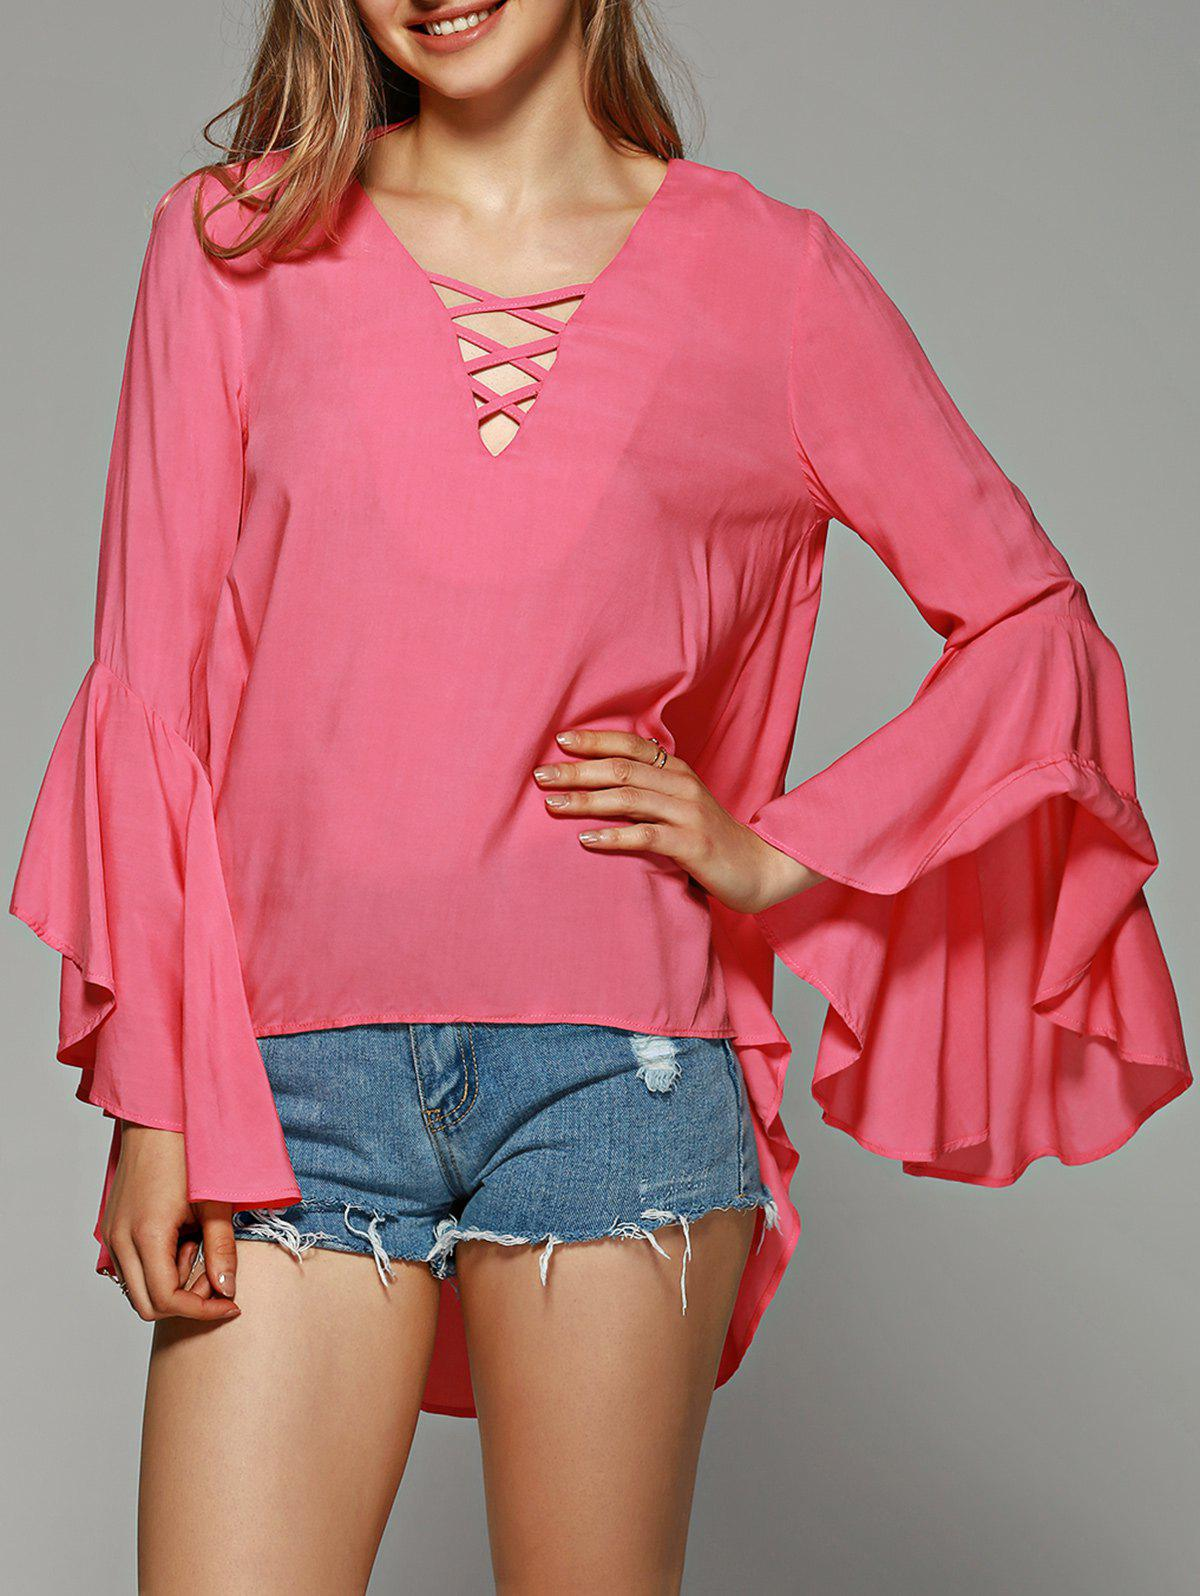 Flare Sleeve Lace-Up Asymmetrical Blouse - ROSE RED XL